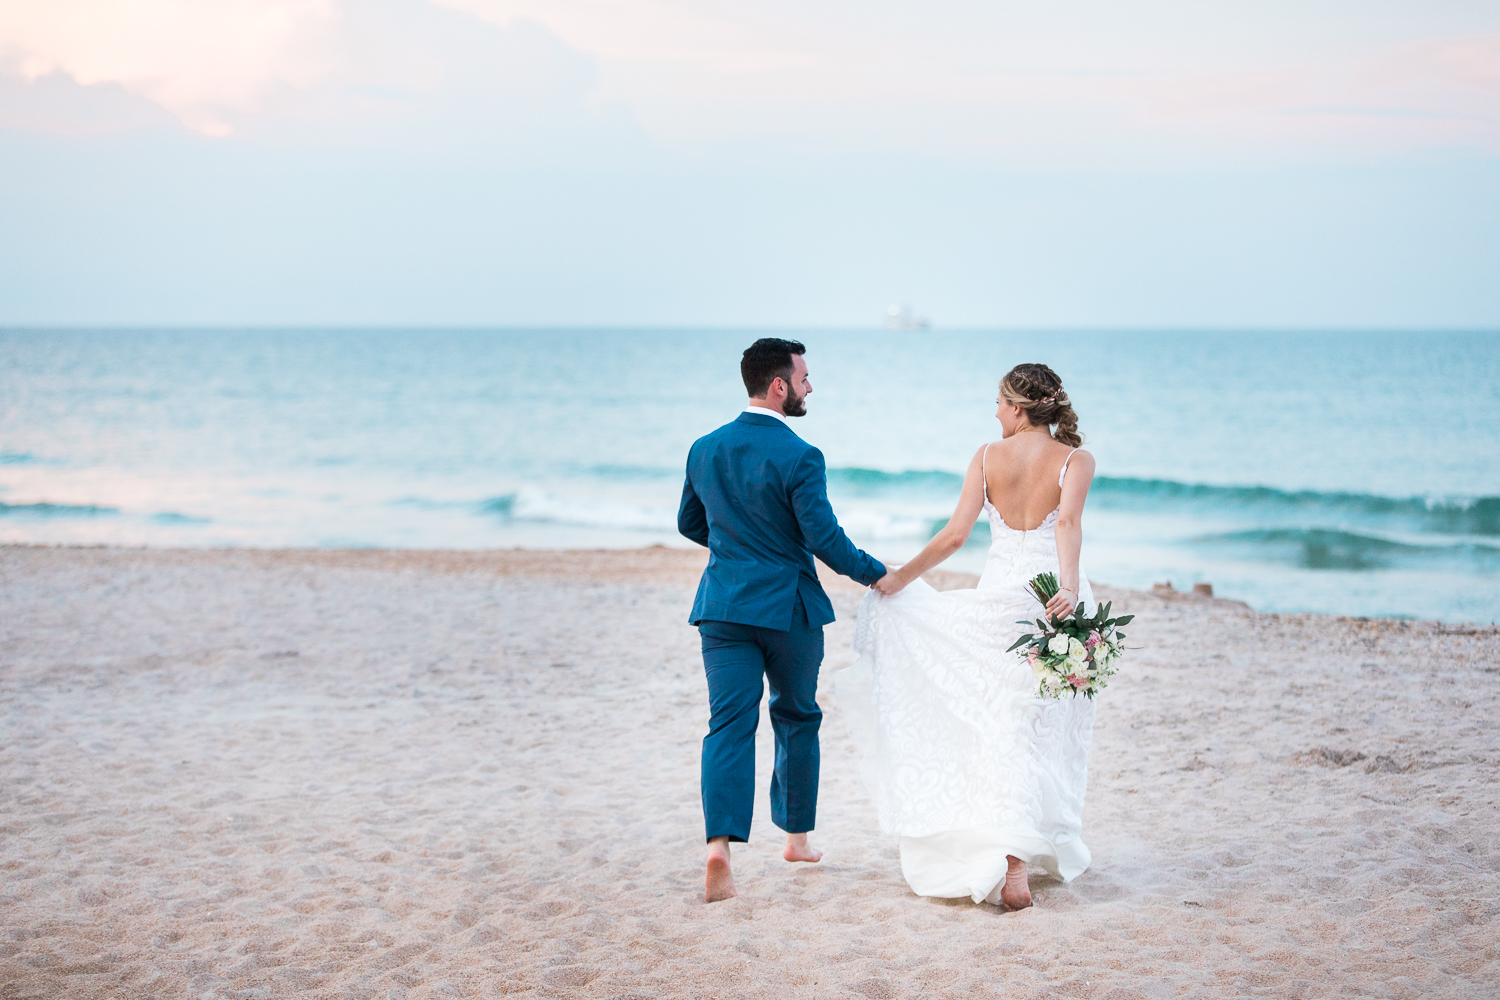 Bride and groom running at the beach during sunset